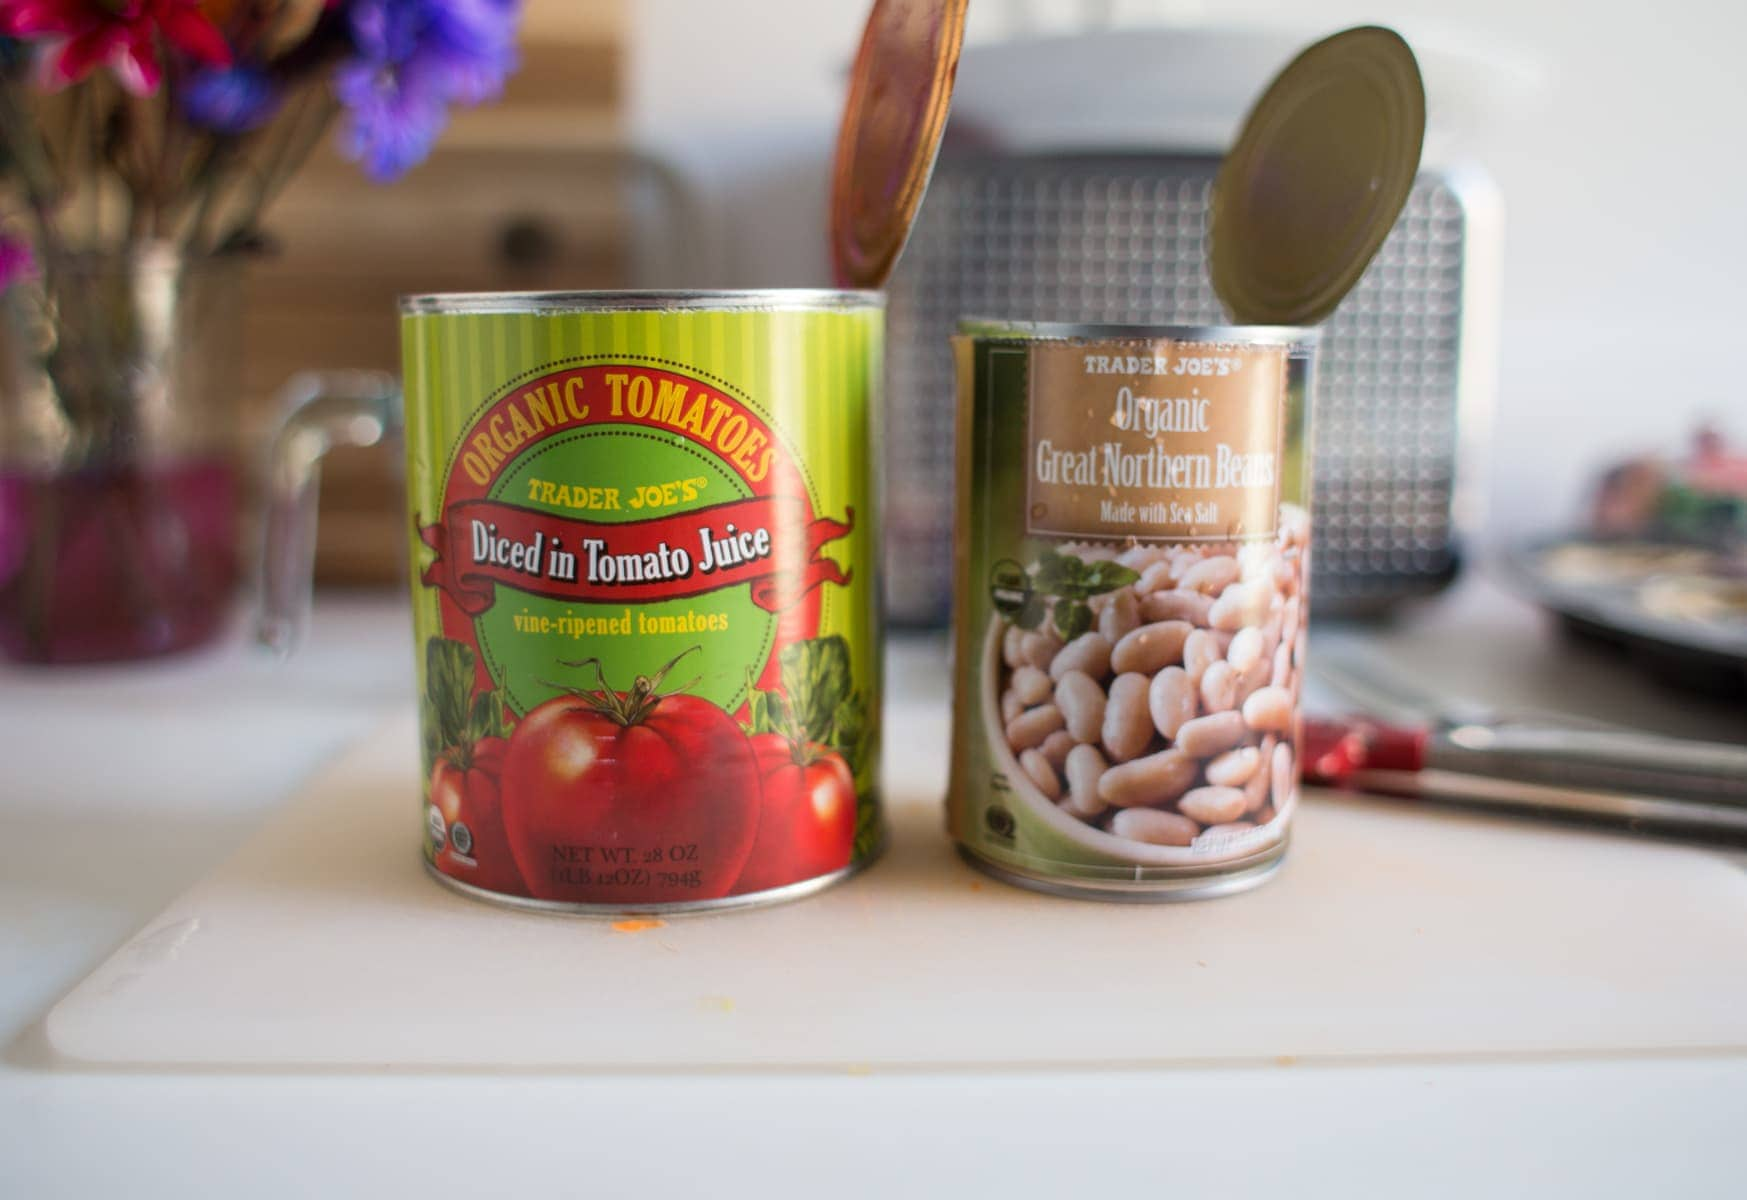 Canned Diced Tomatoes and Great Northern Beans